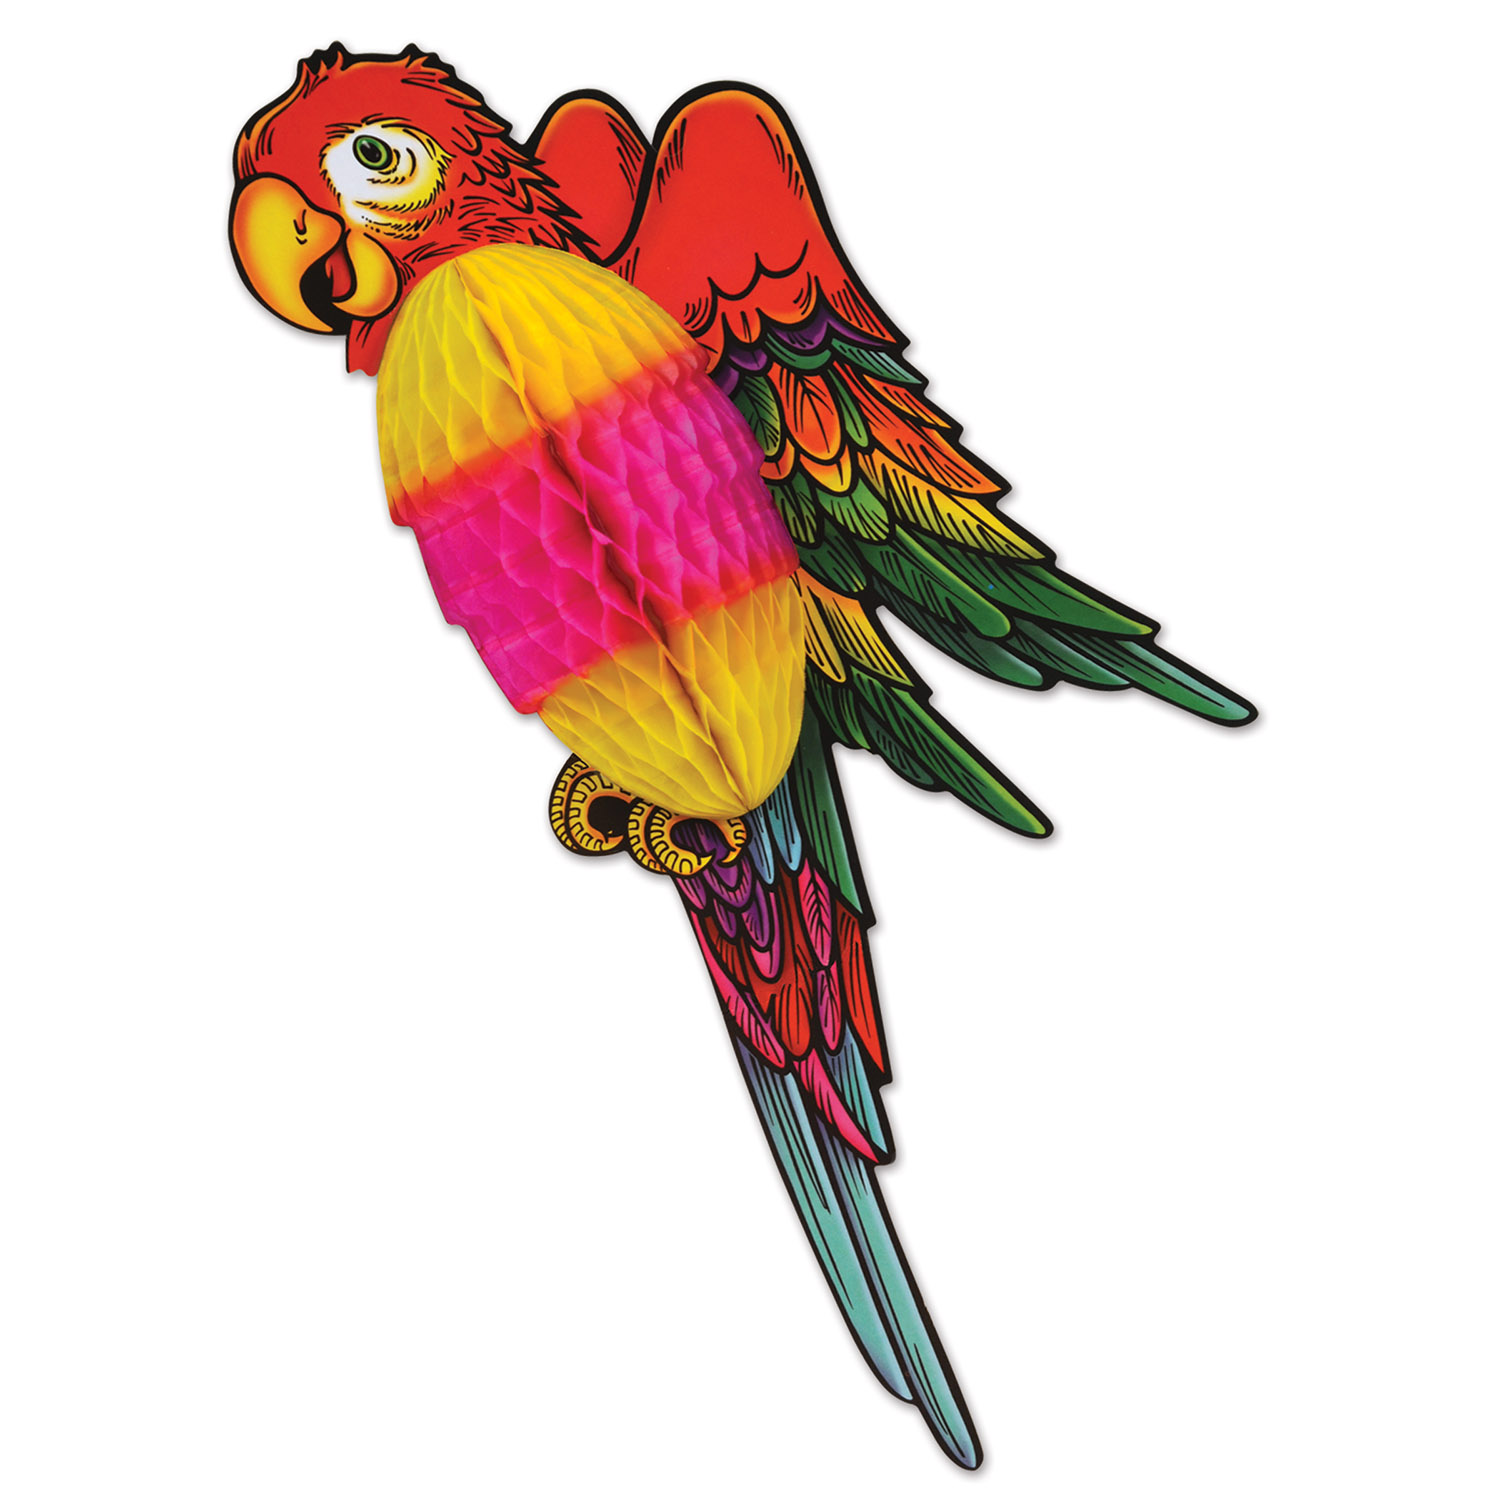 Tissue Parrot (Pack of 12) Tissue Parrot, decoraiton, wholesale, inexpensive, bulk, luau, new years eve